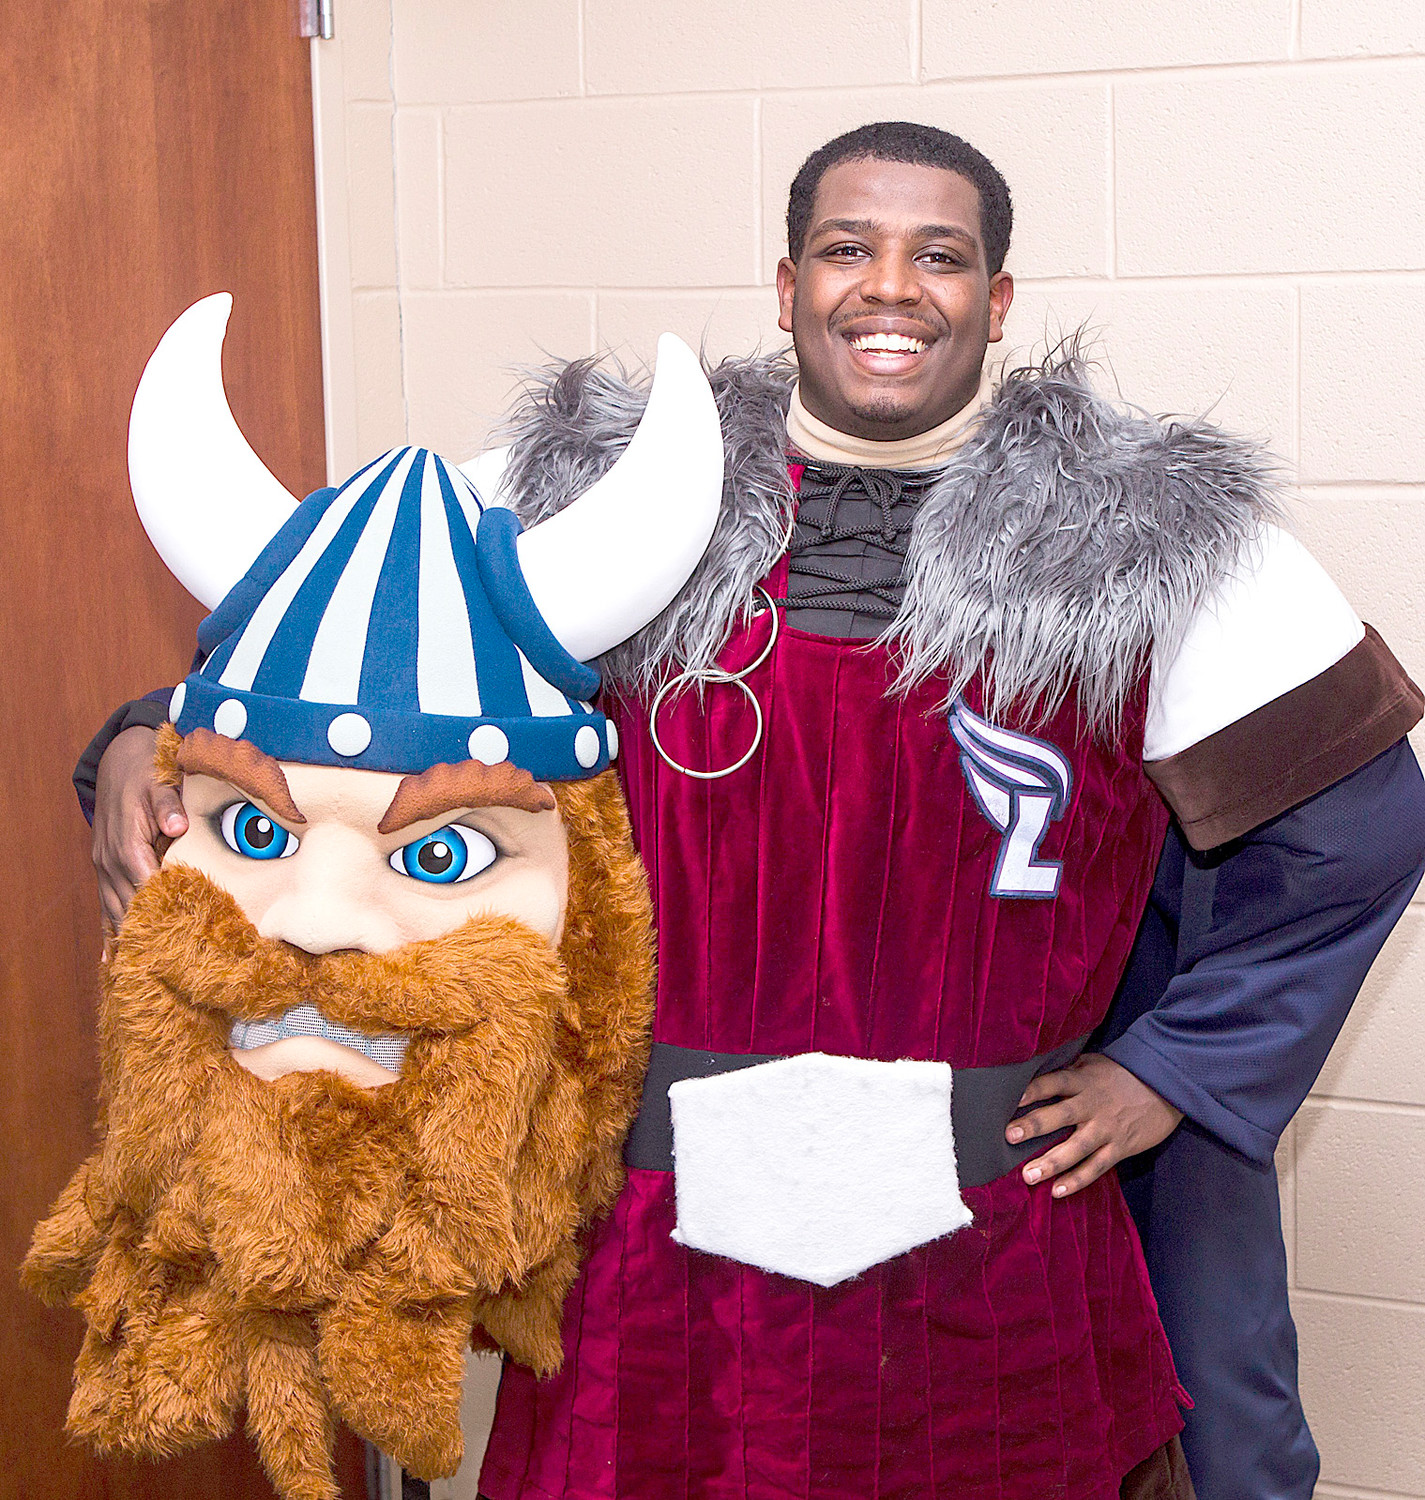 Valor the Viking is played by Lee freshman Yodahe Getachew.